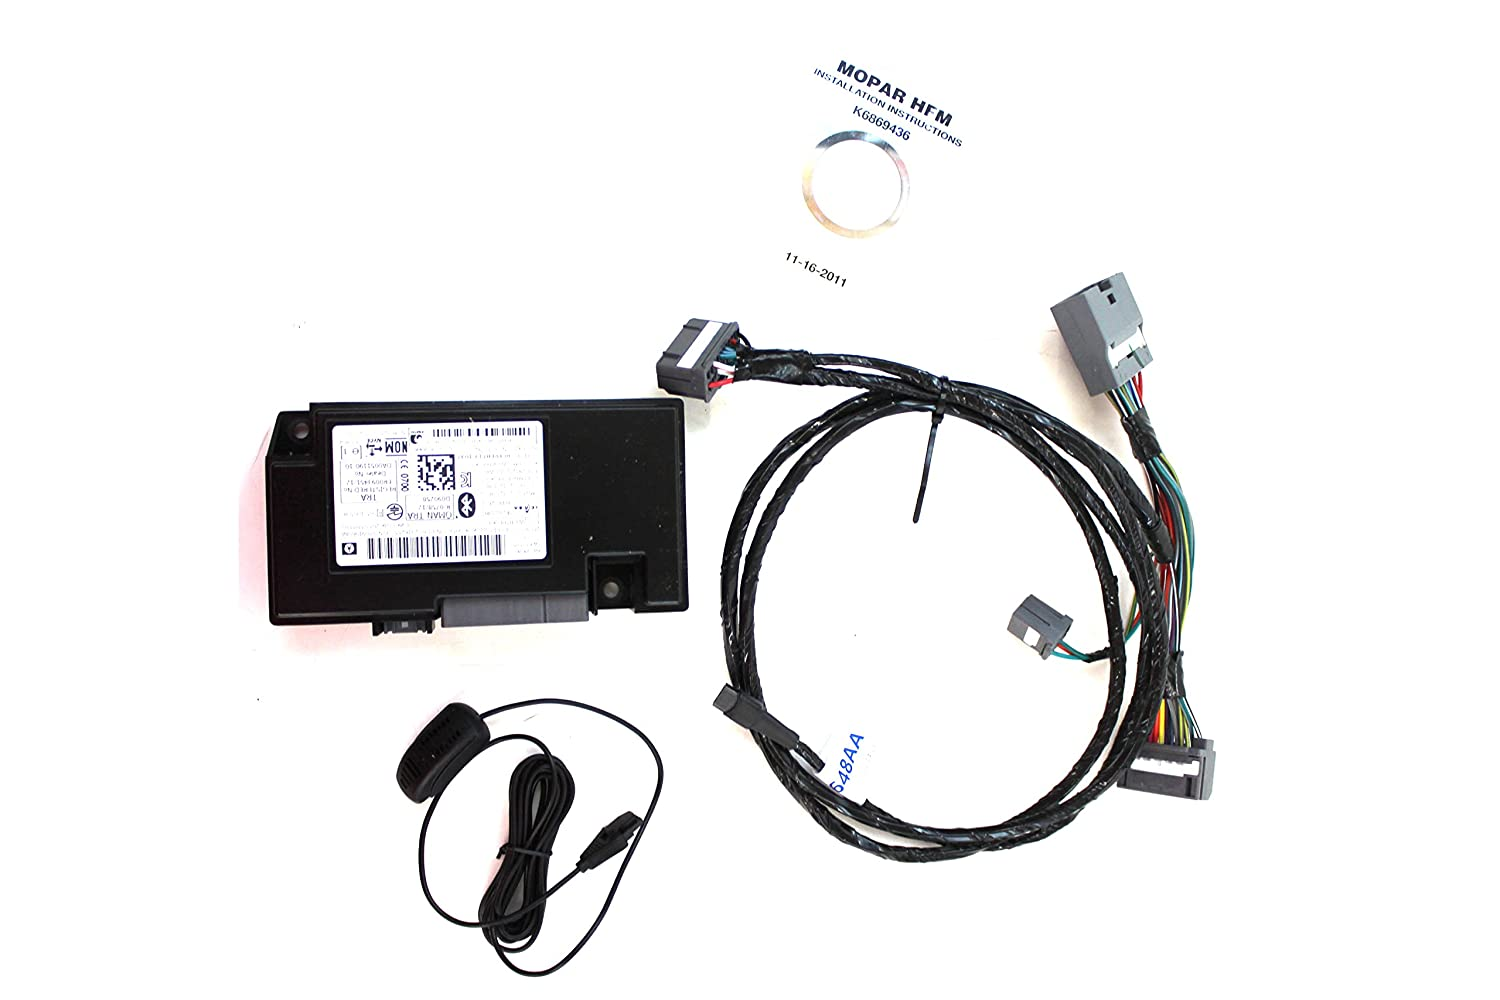 Amazon.com: Genuine Jeep Accessories 82212159 Uconnect Bluetooth Kit on honda wiring diagram, dvd wiring diagram, 2008 chrysler 300 wiring diagram, audi wiring diagram, toyota wiring diagram, radio wiring diagram, chrysler car stereo wiring diagram, mygig wiring diagram, lincoln wiring diagram, speed control wiring diagram, audio wiring diagram, a/c wiring diagram, abs wiring diagram, chevrolet wiring diagram, alarm wiring diagram, hemi wiring diagram, jeep wiring diagram, dodge wiring diagram, ram wiring diagram, kia wiring diagram,